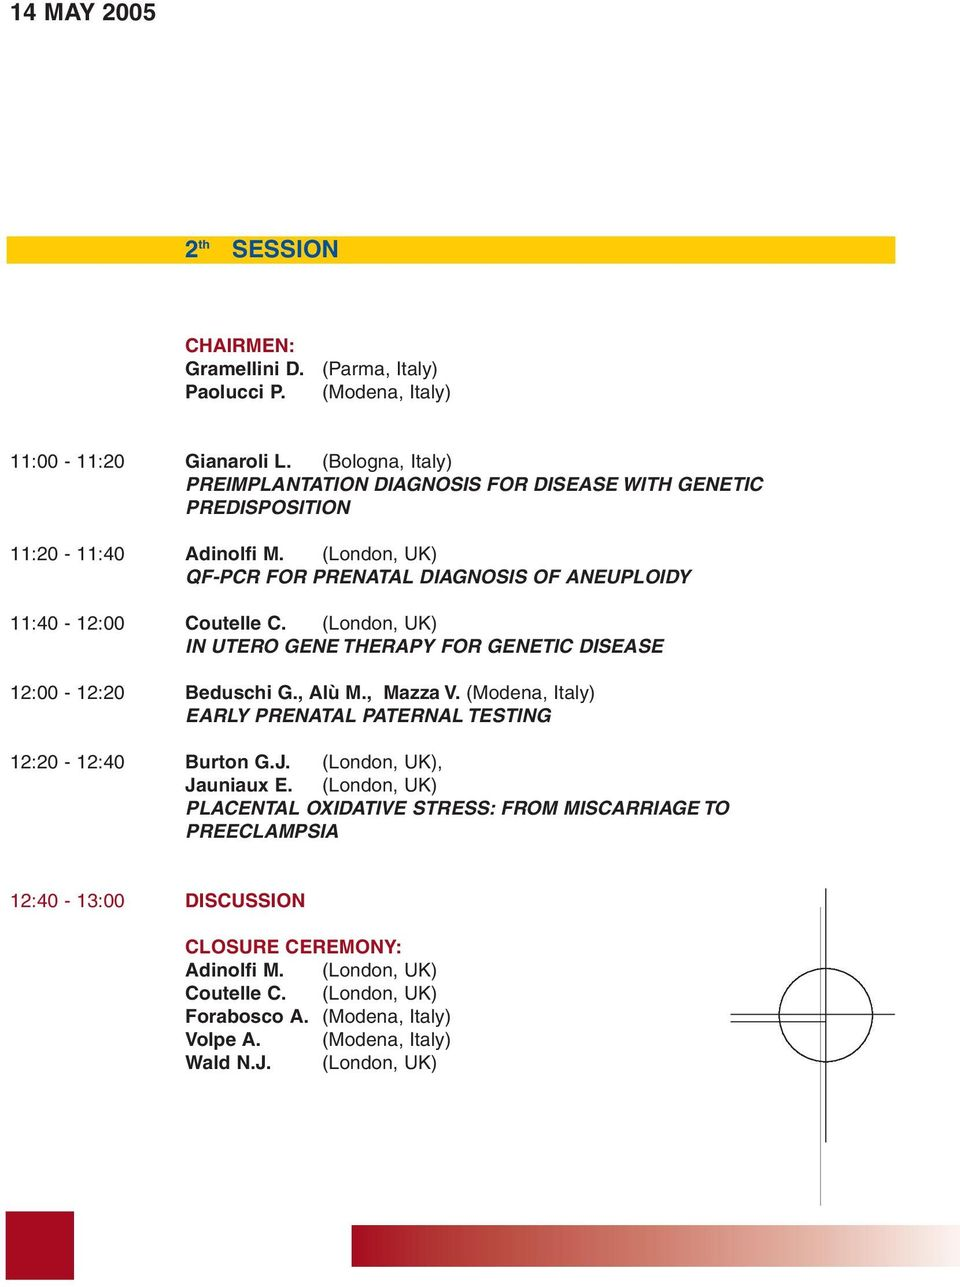 QF-PCR FOR PRENATAL DIAGNOSIS OF ANEUPLOIDY 11:40-12:00 Coutelle C. IN UTERO GENE THERAPY FOR GENETIC DISEASE 12:00-12:20 Beduschi G., Alù M.